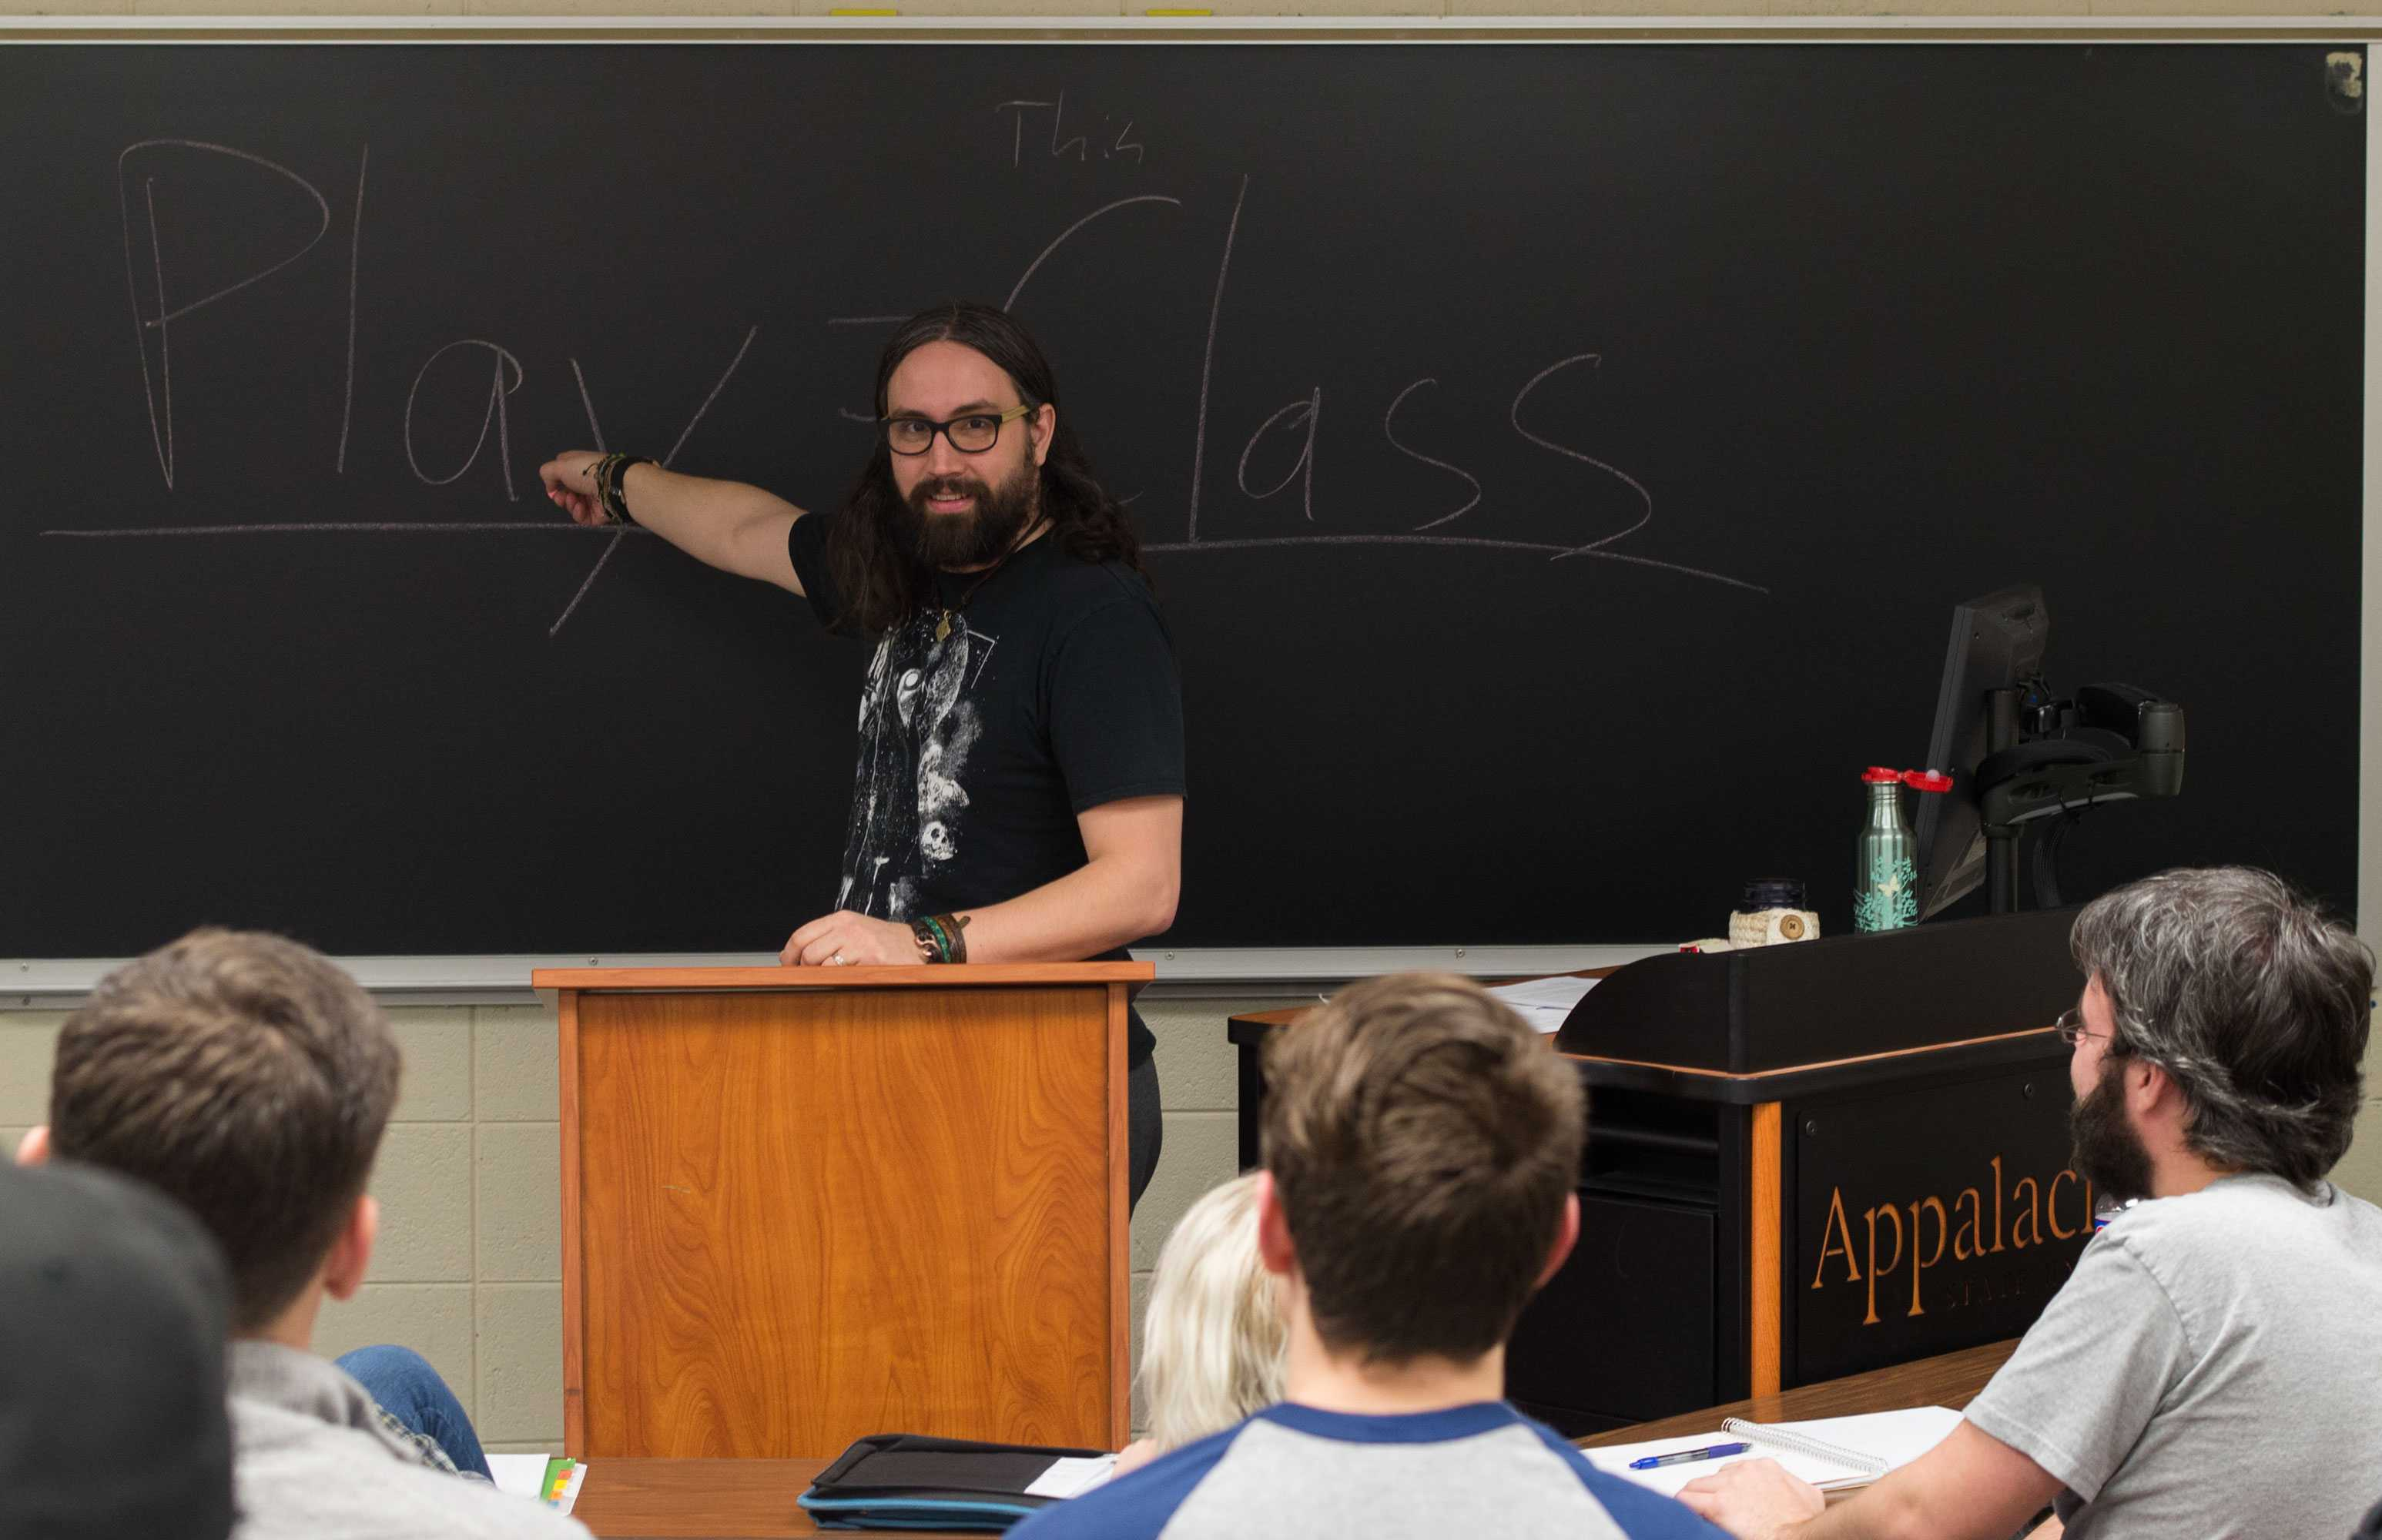 Department of Communication professor Mr. Mark Bentley lectures during his Videogame Discourse class in Walker Hall. Photo by Dallas Linger.